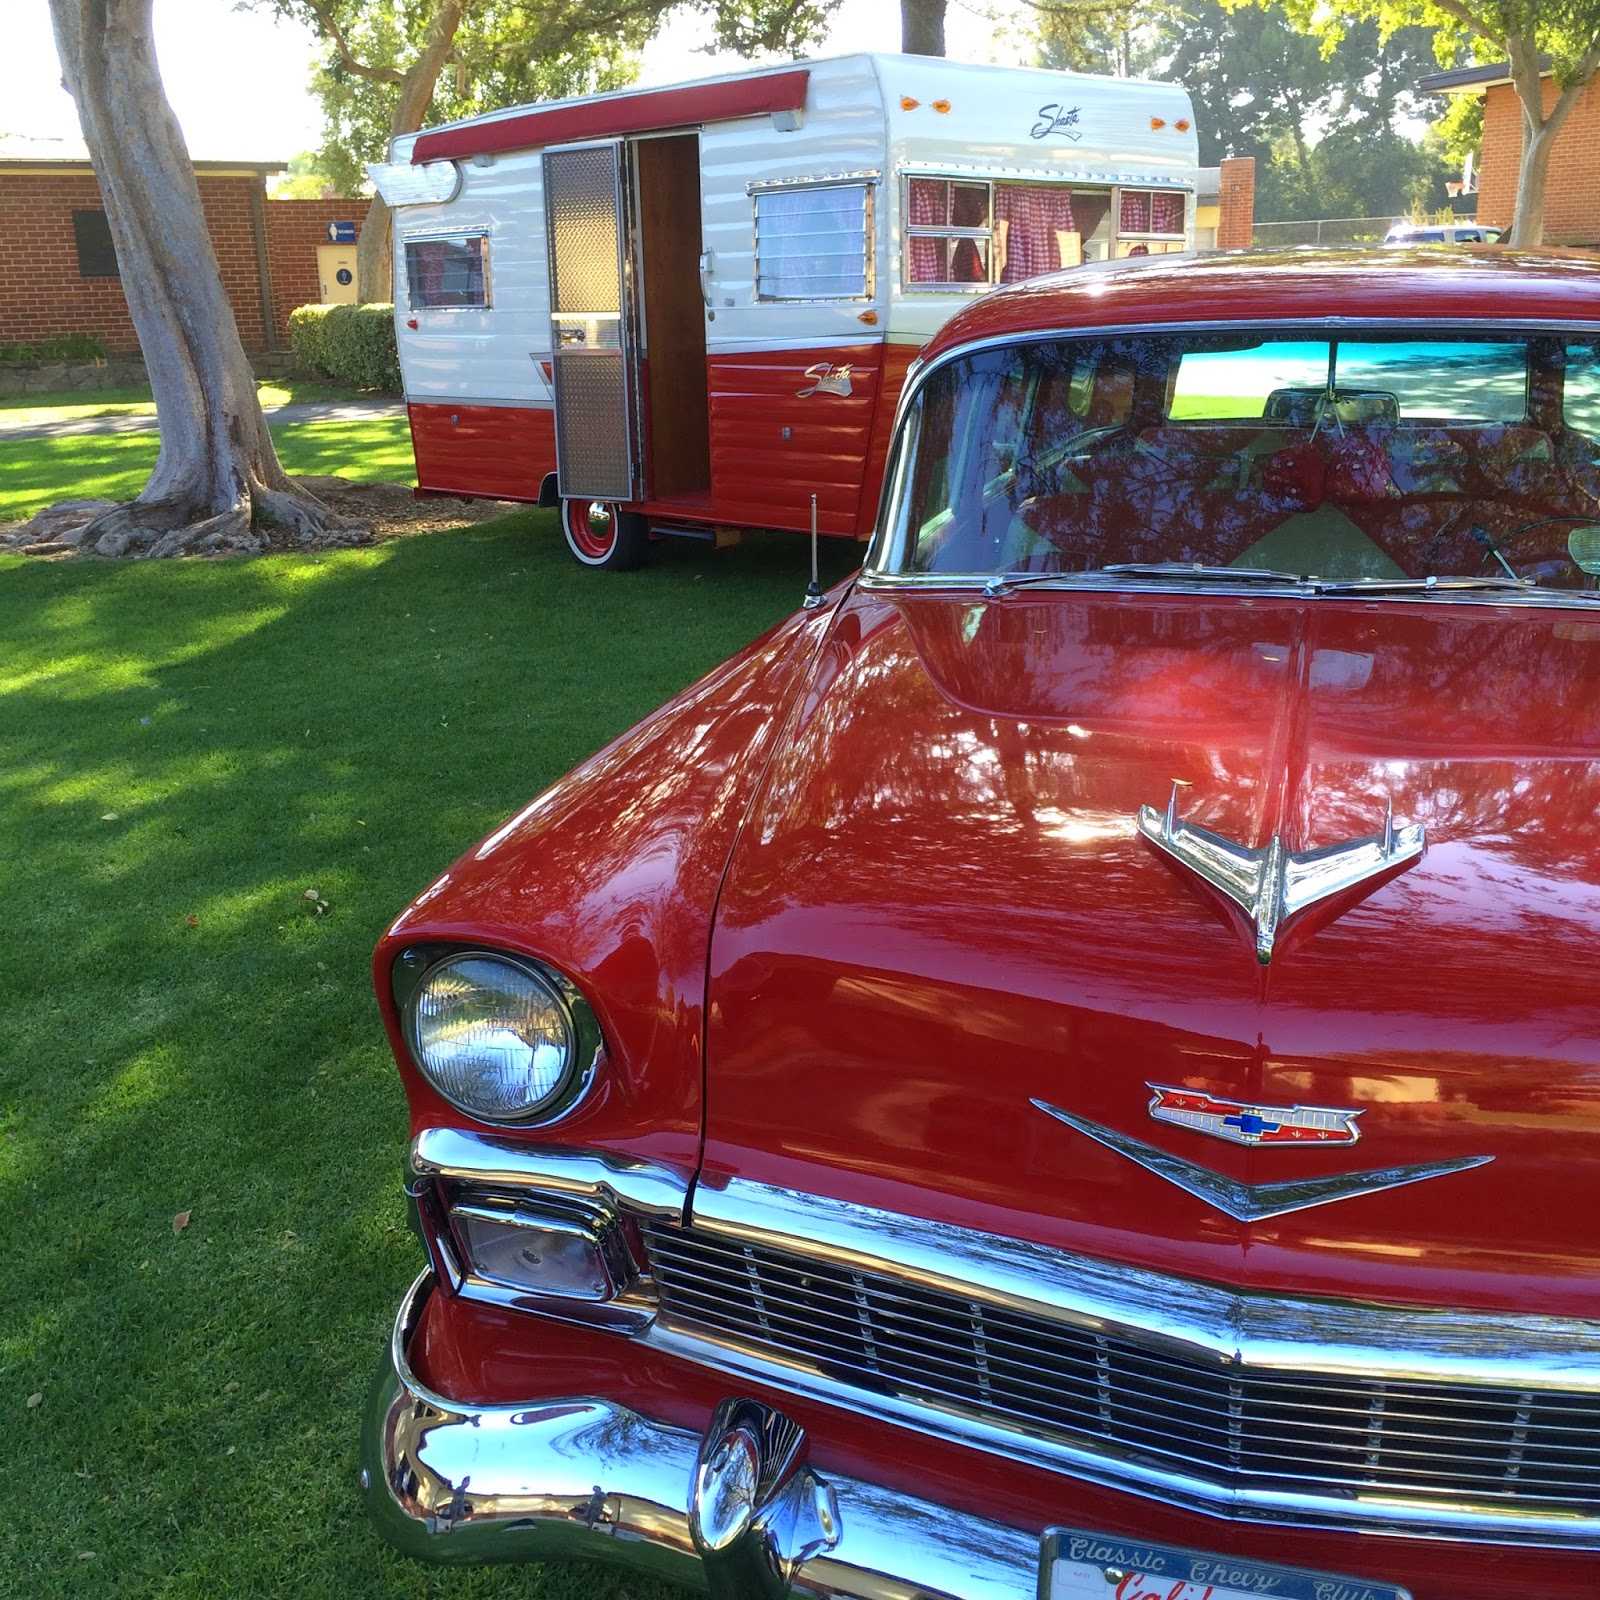 1956 Chevy Wagon & Shasta Trailer from our December Catalog Cover